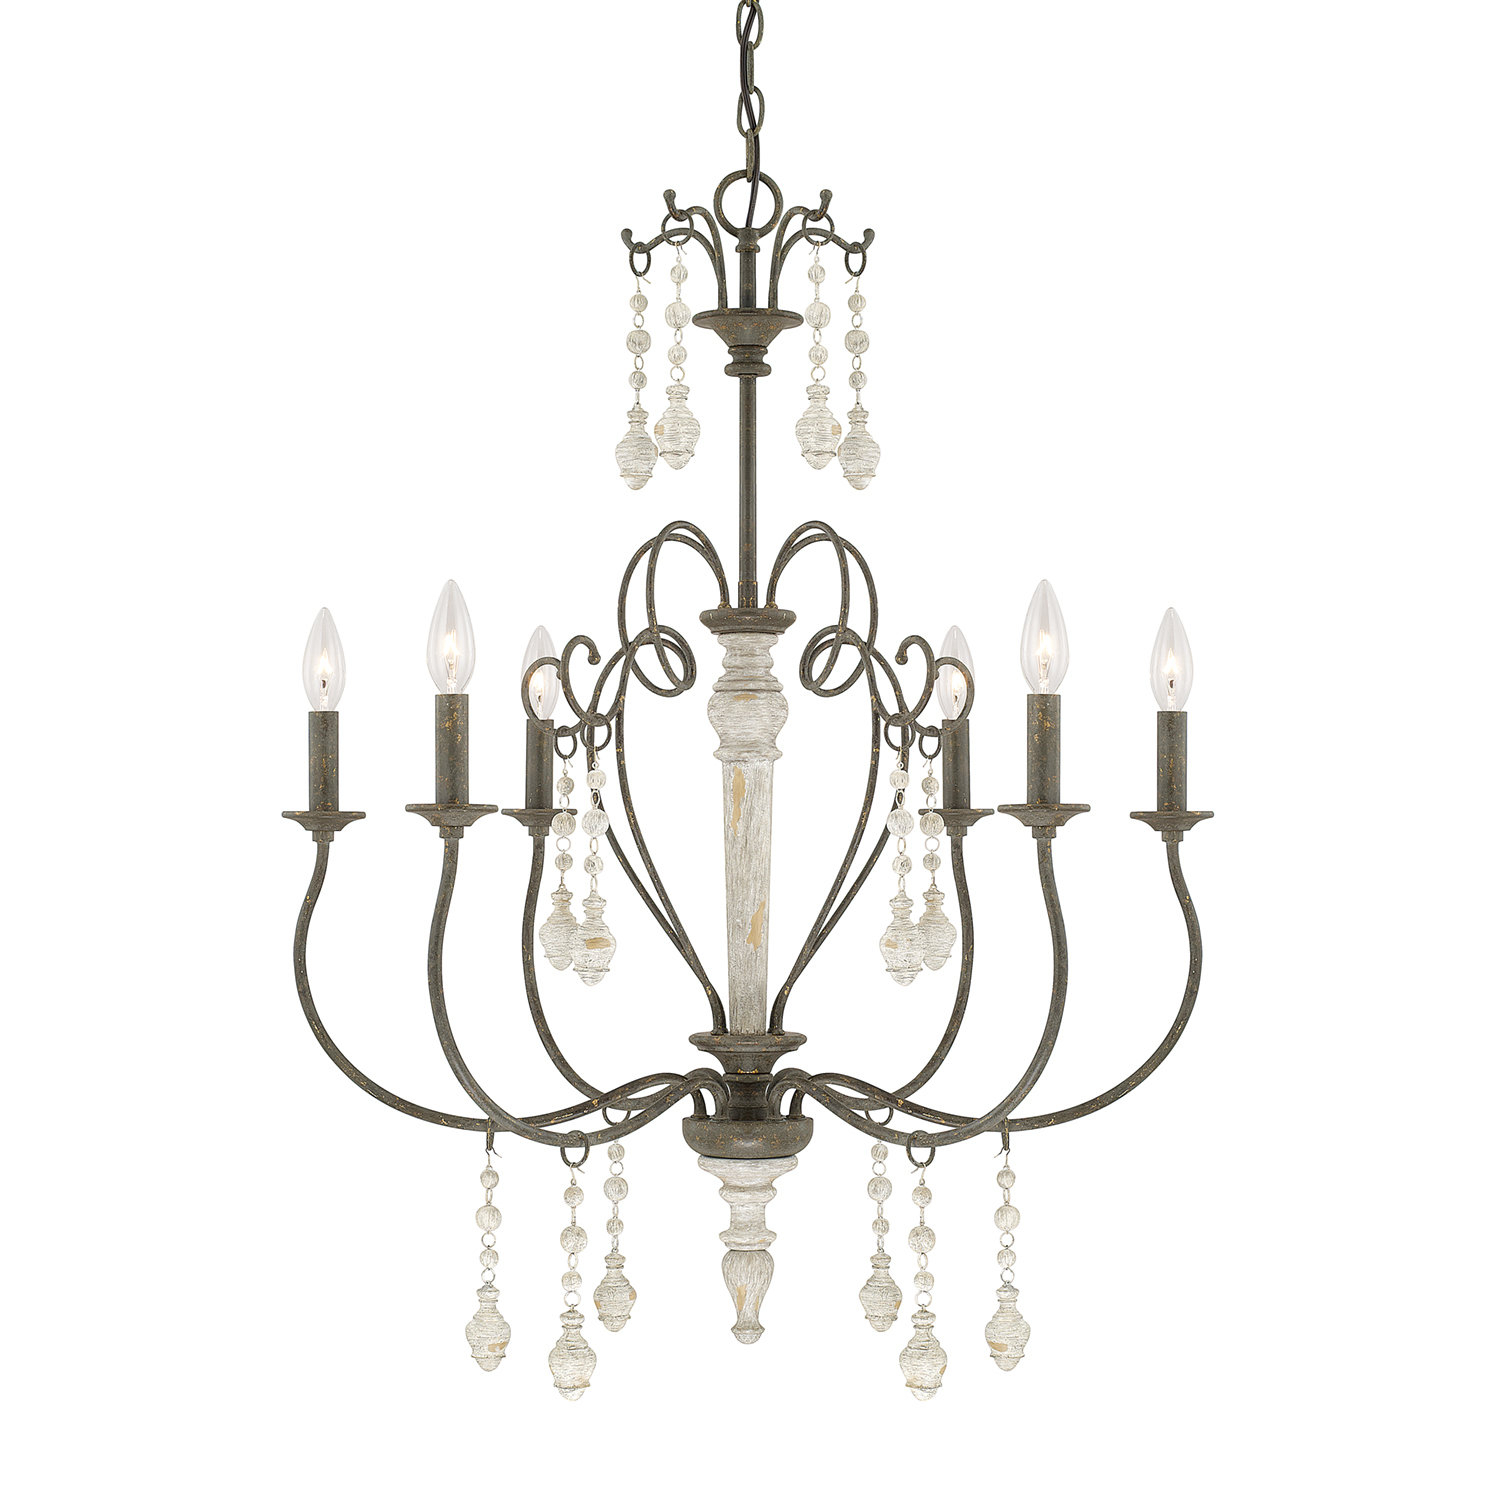 Bouchette Traditional 6-Light Chandelier in Corneau 5-Light Chandeliers (Image 7 of 30)